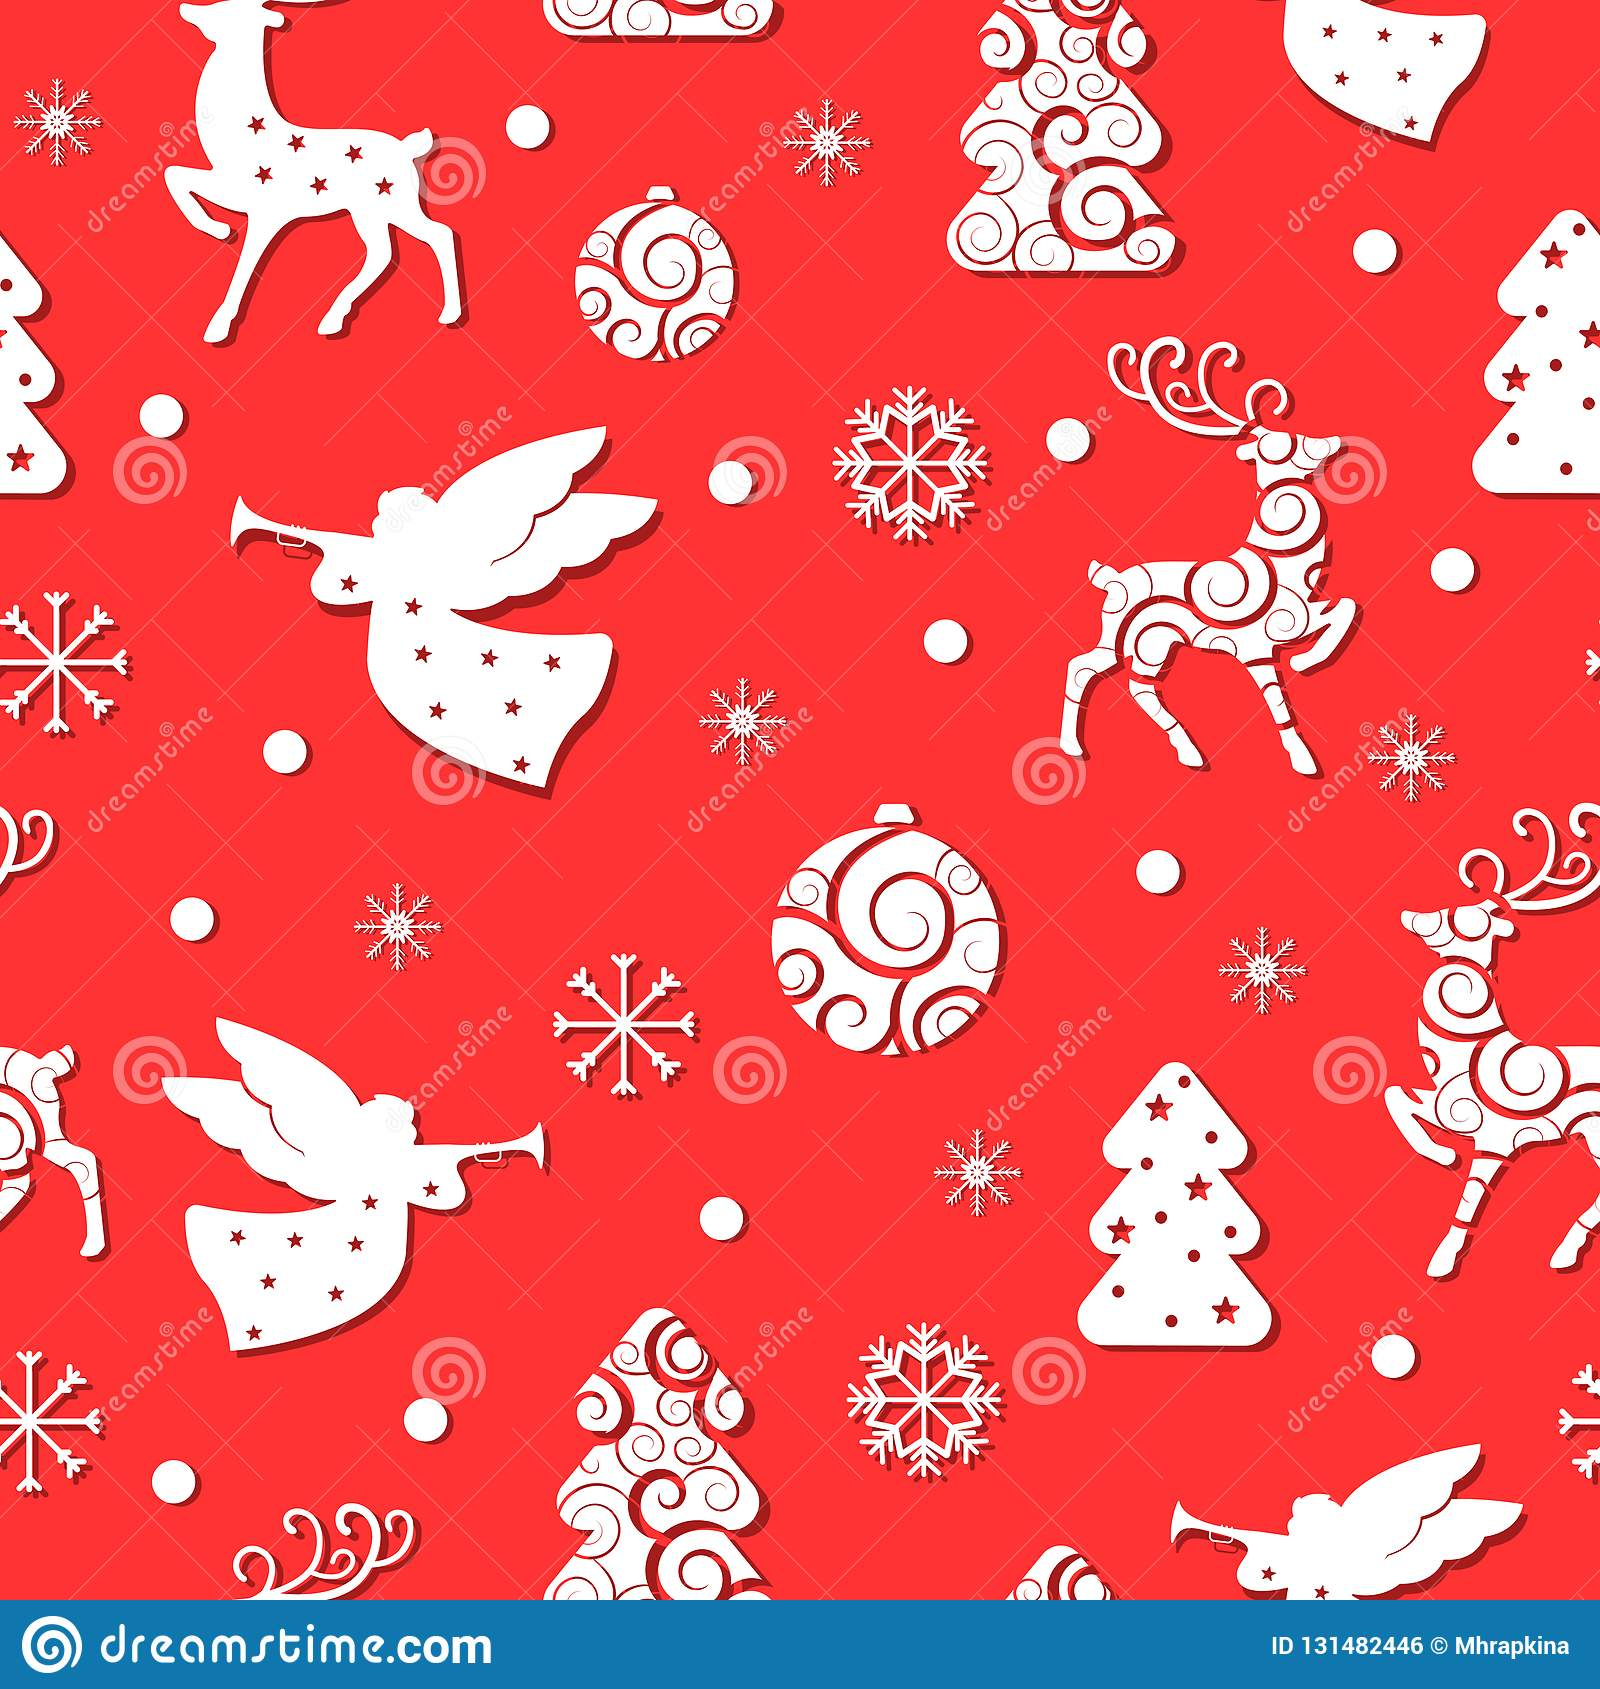 Christmas seamless pattern with holiday symbols